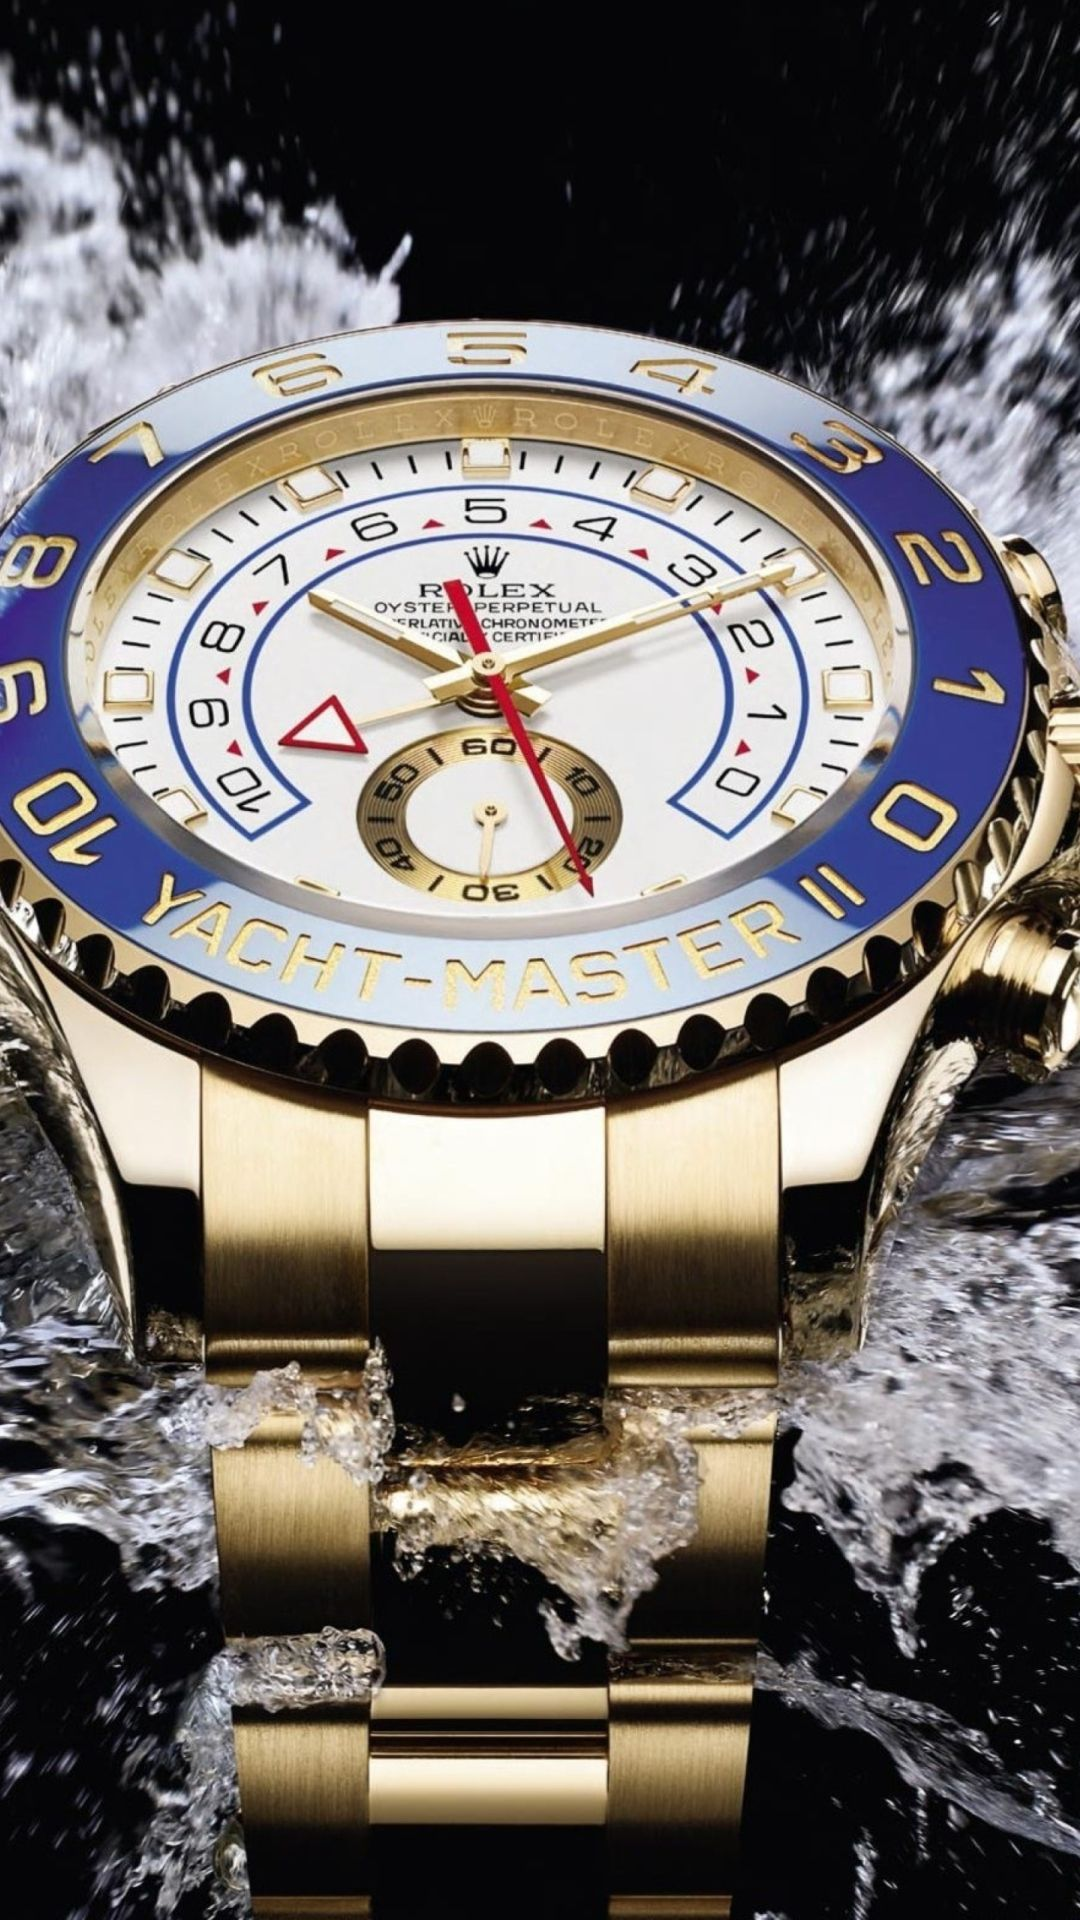 Rolex Hd Iphone Wallpapers Top Free Rolex Hd Iphone